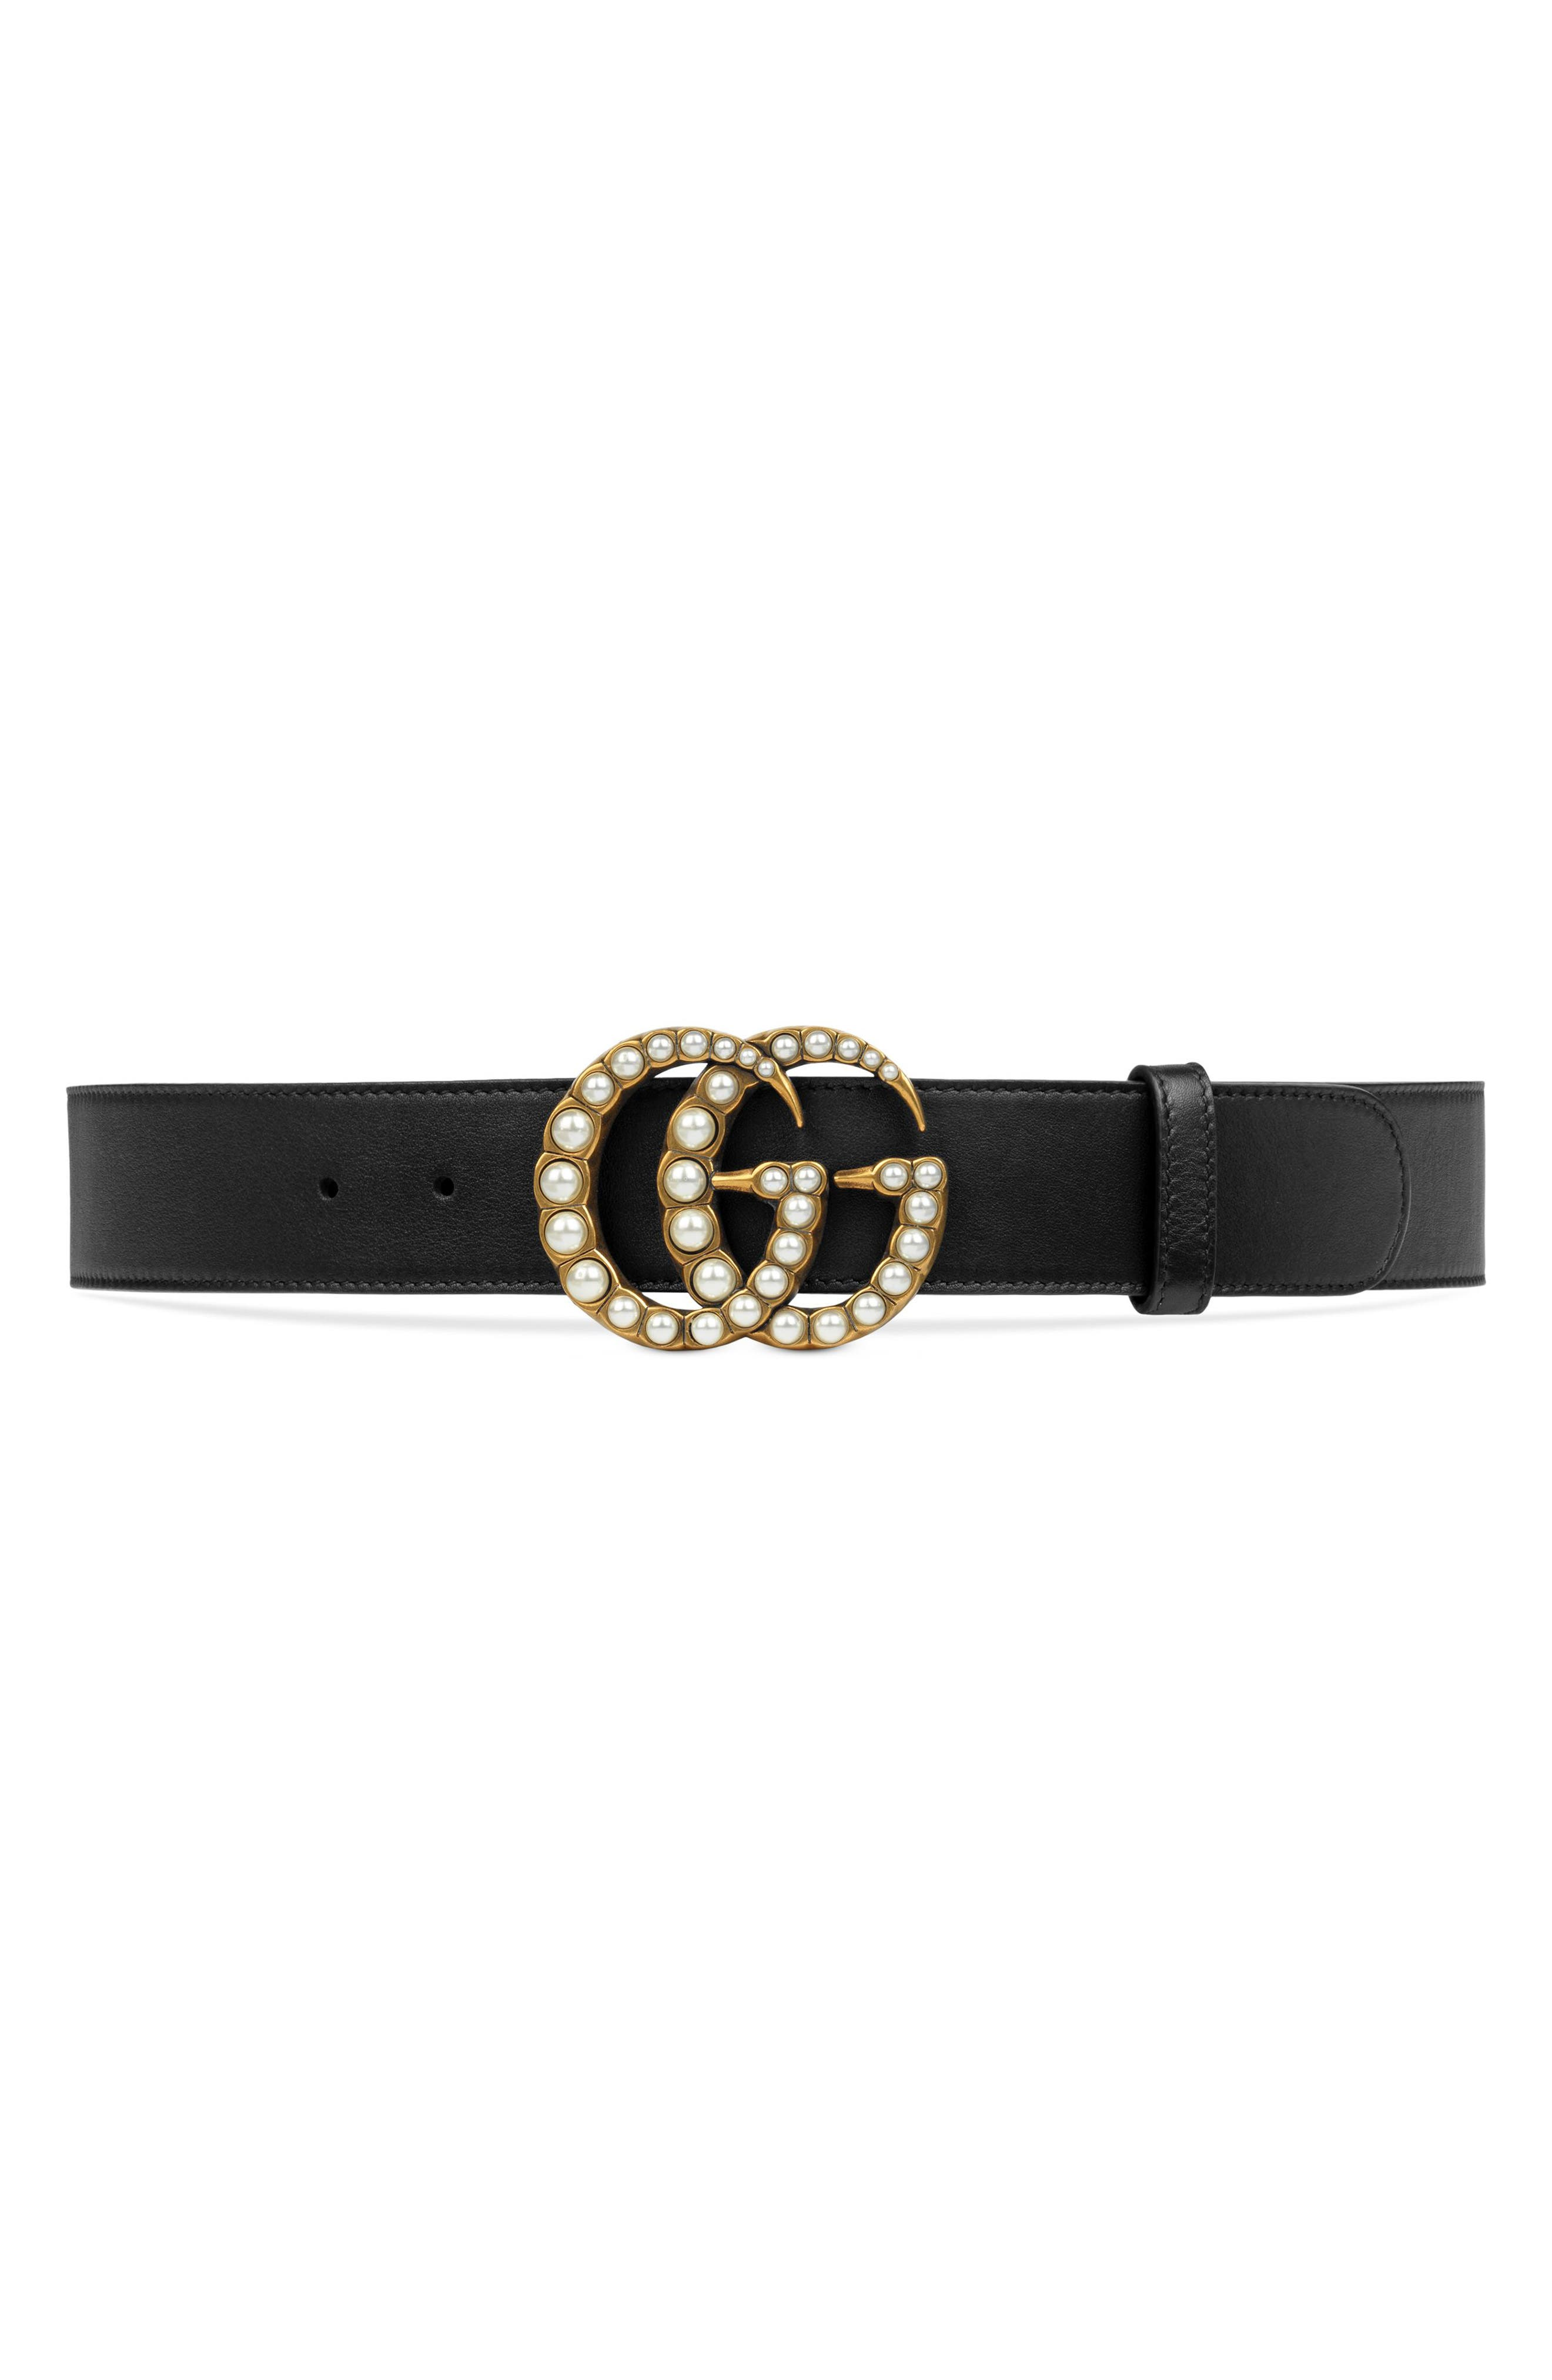 Imitation Pearl Double-G Leather Belt,                             Main thumbnail 1, color,                             Dlx1t 9094 Nero/Cream